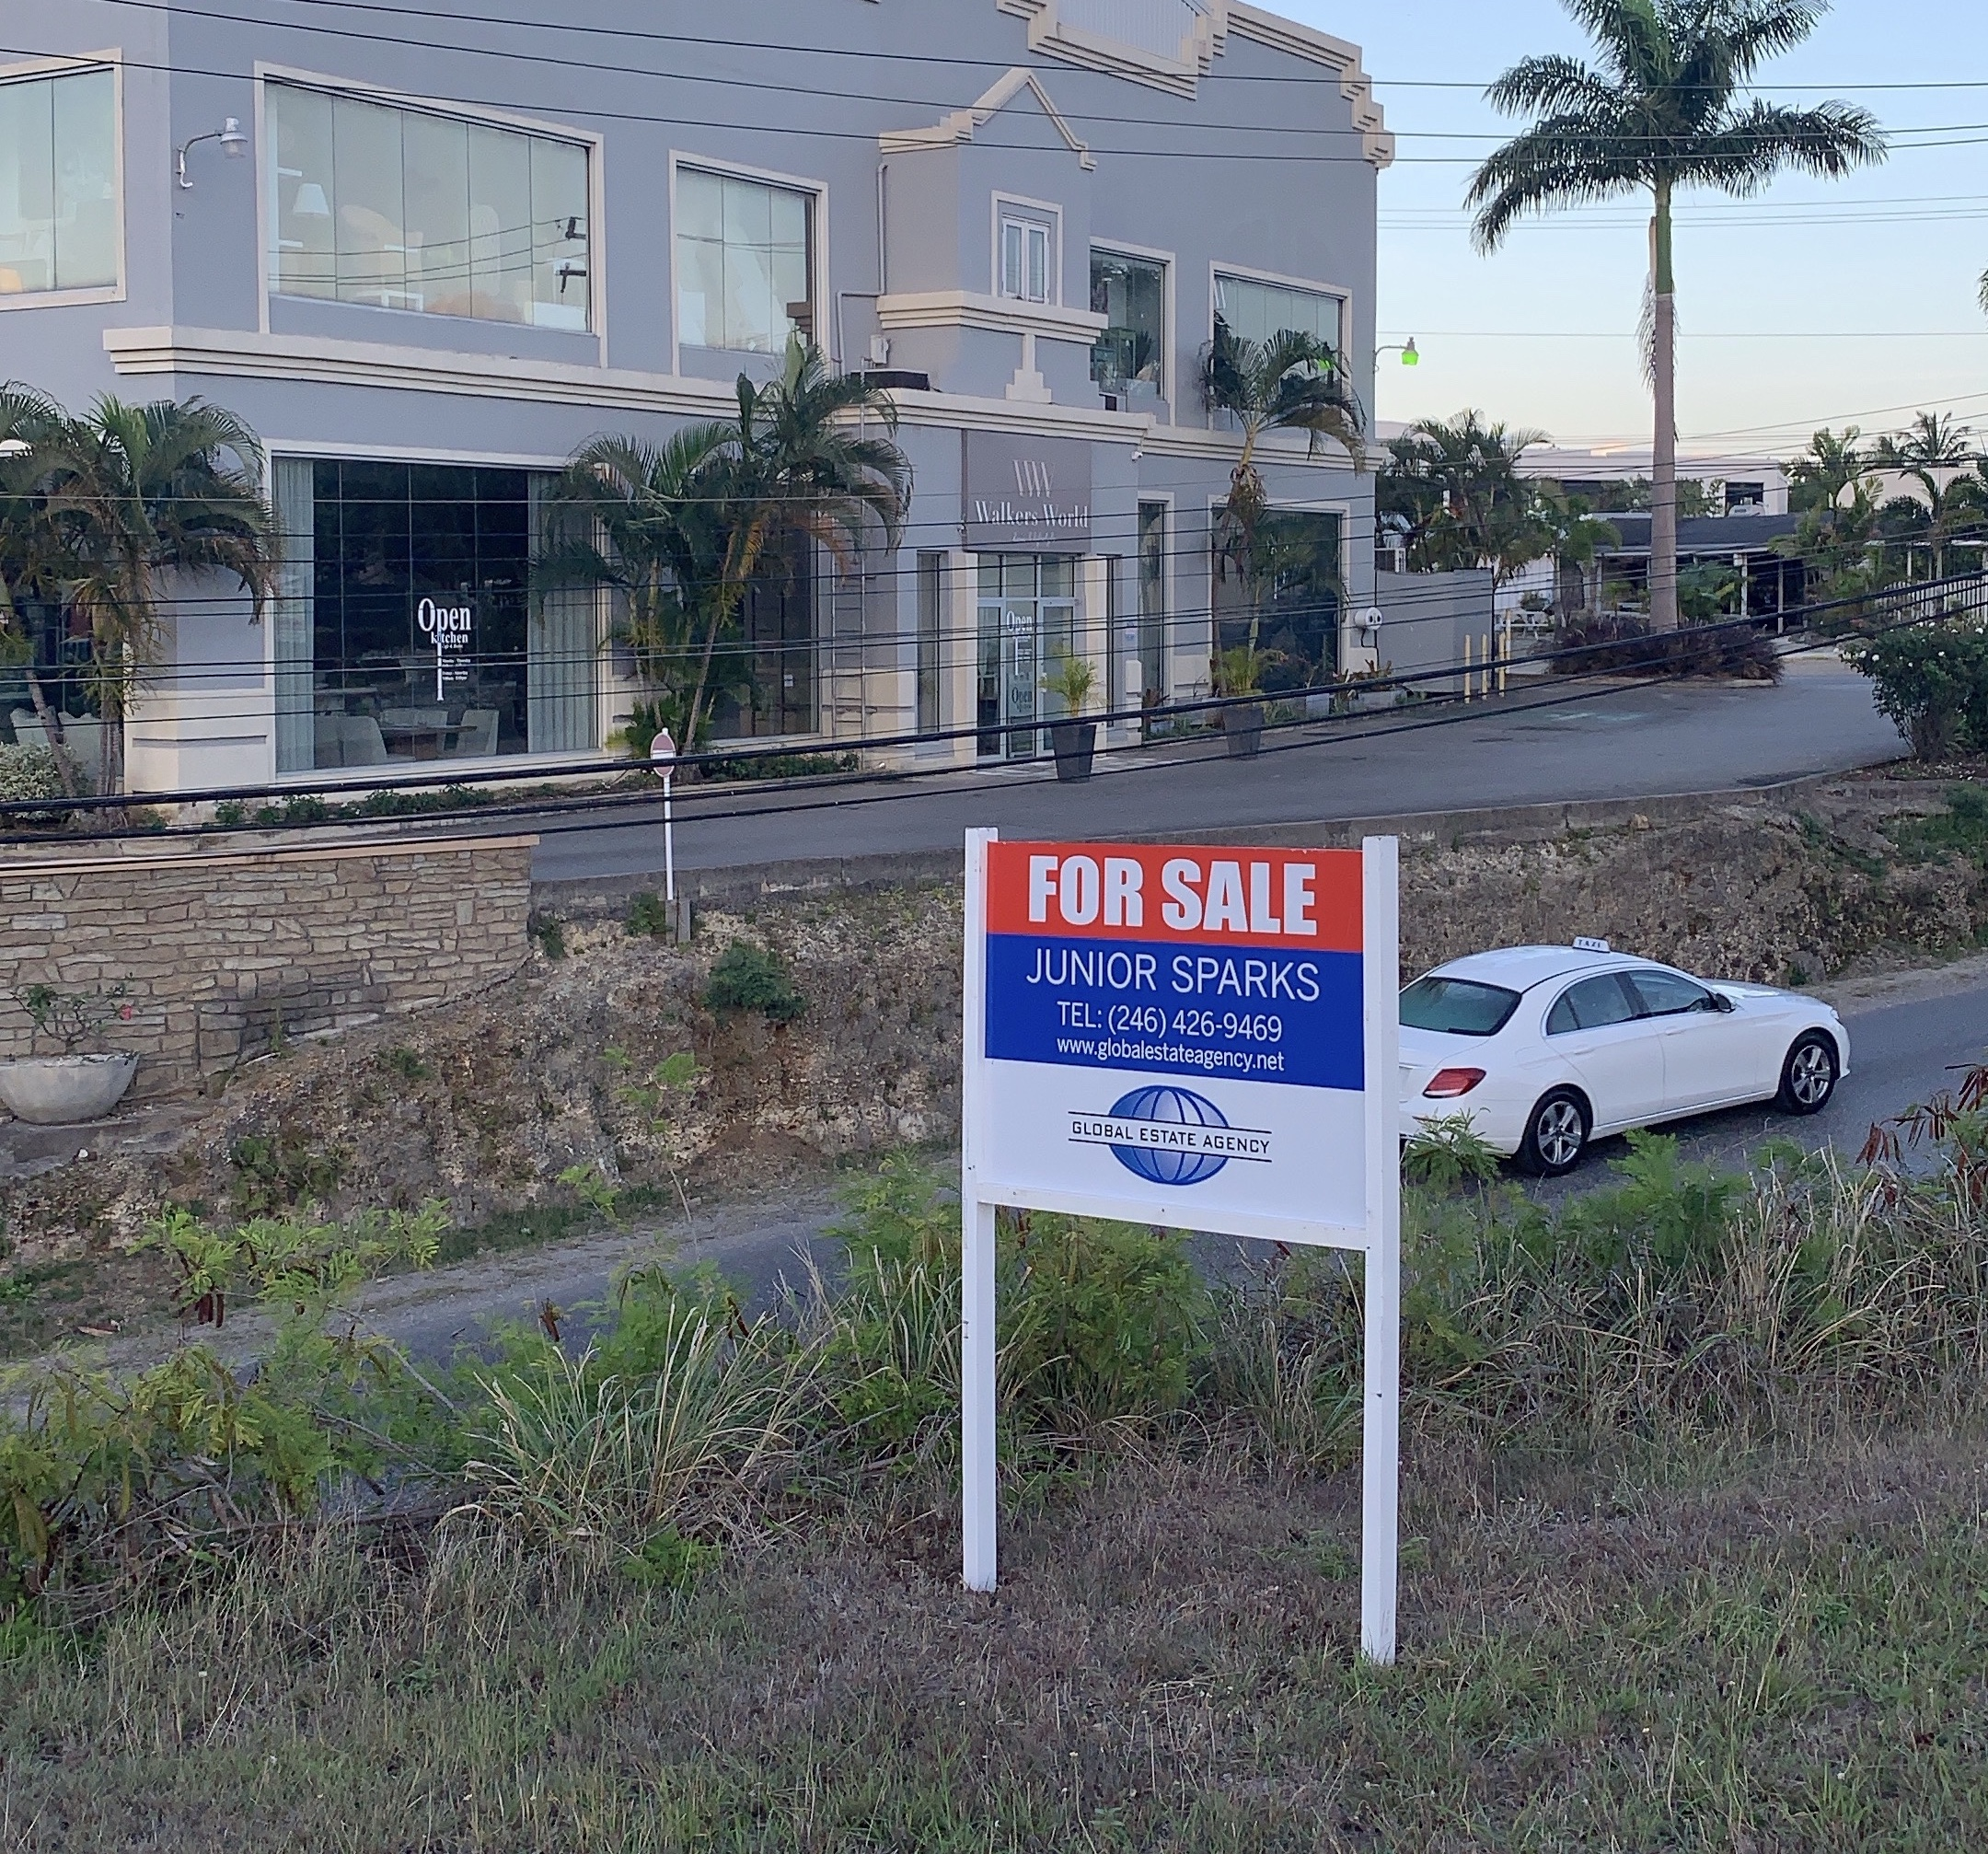 5-Steps-to-Buying-Vacant-Land-in-Barbados1.jpg